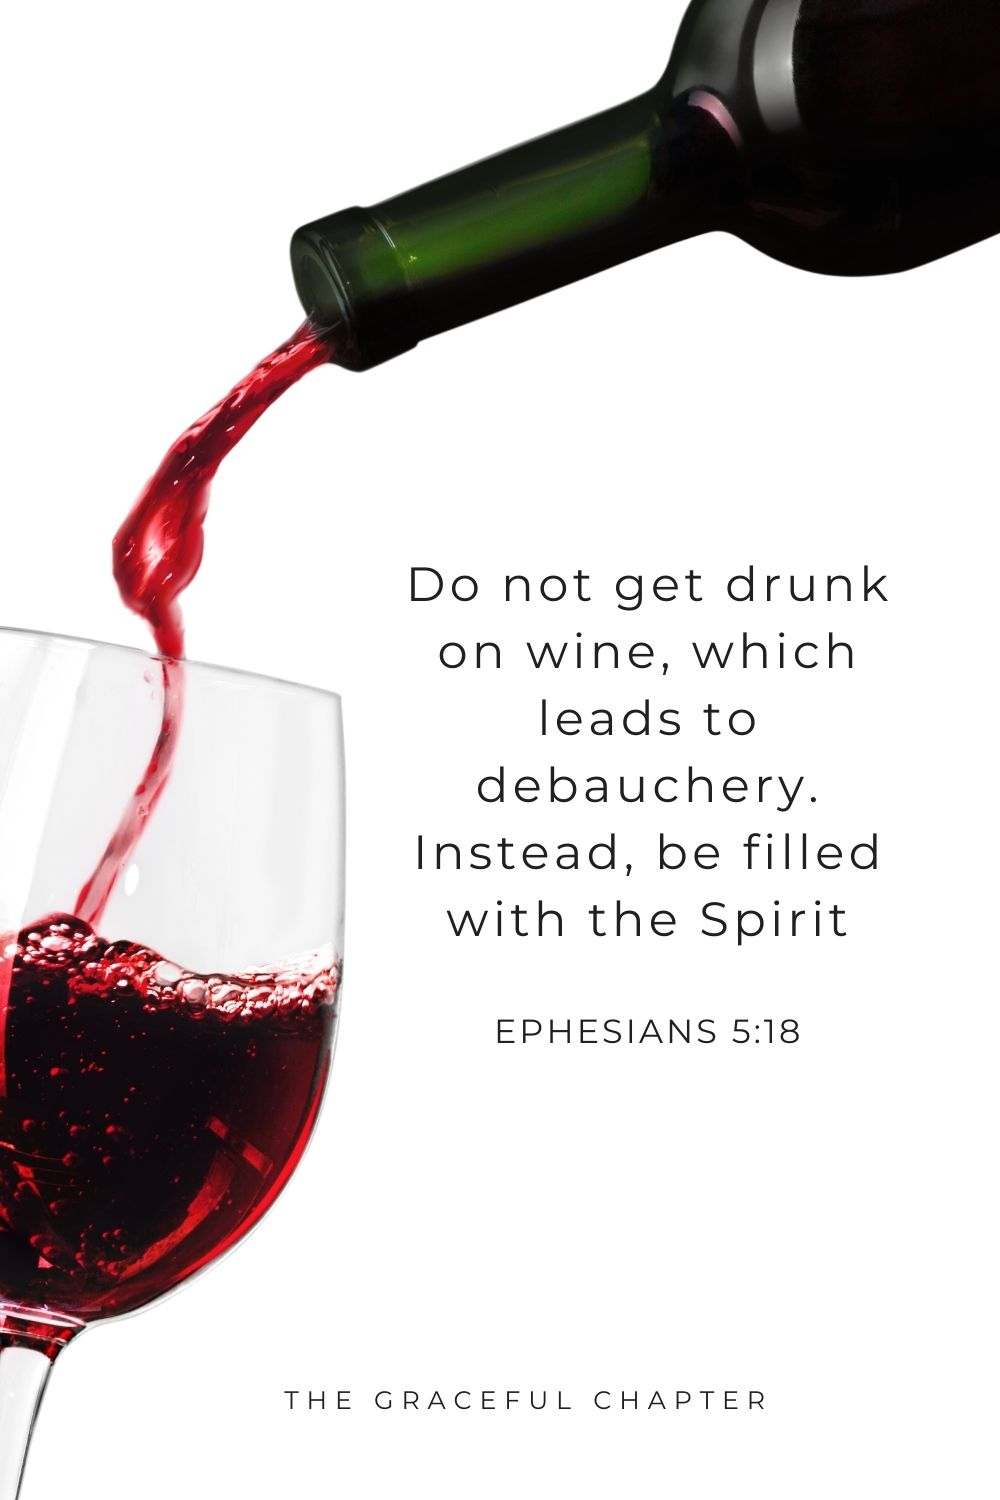 Do not get drunk on wine, which leads to debauchery. Instead, be filled with the Spirit Ephesians 5:18